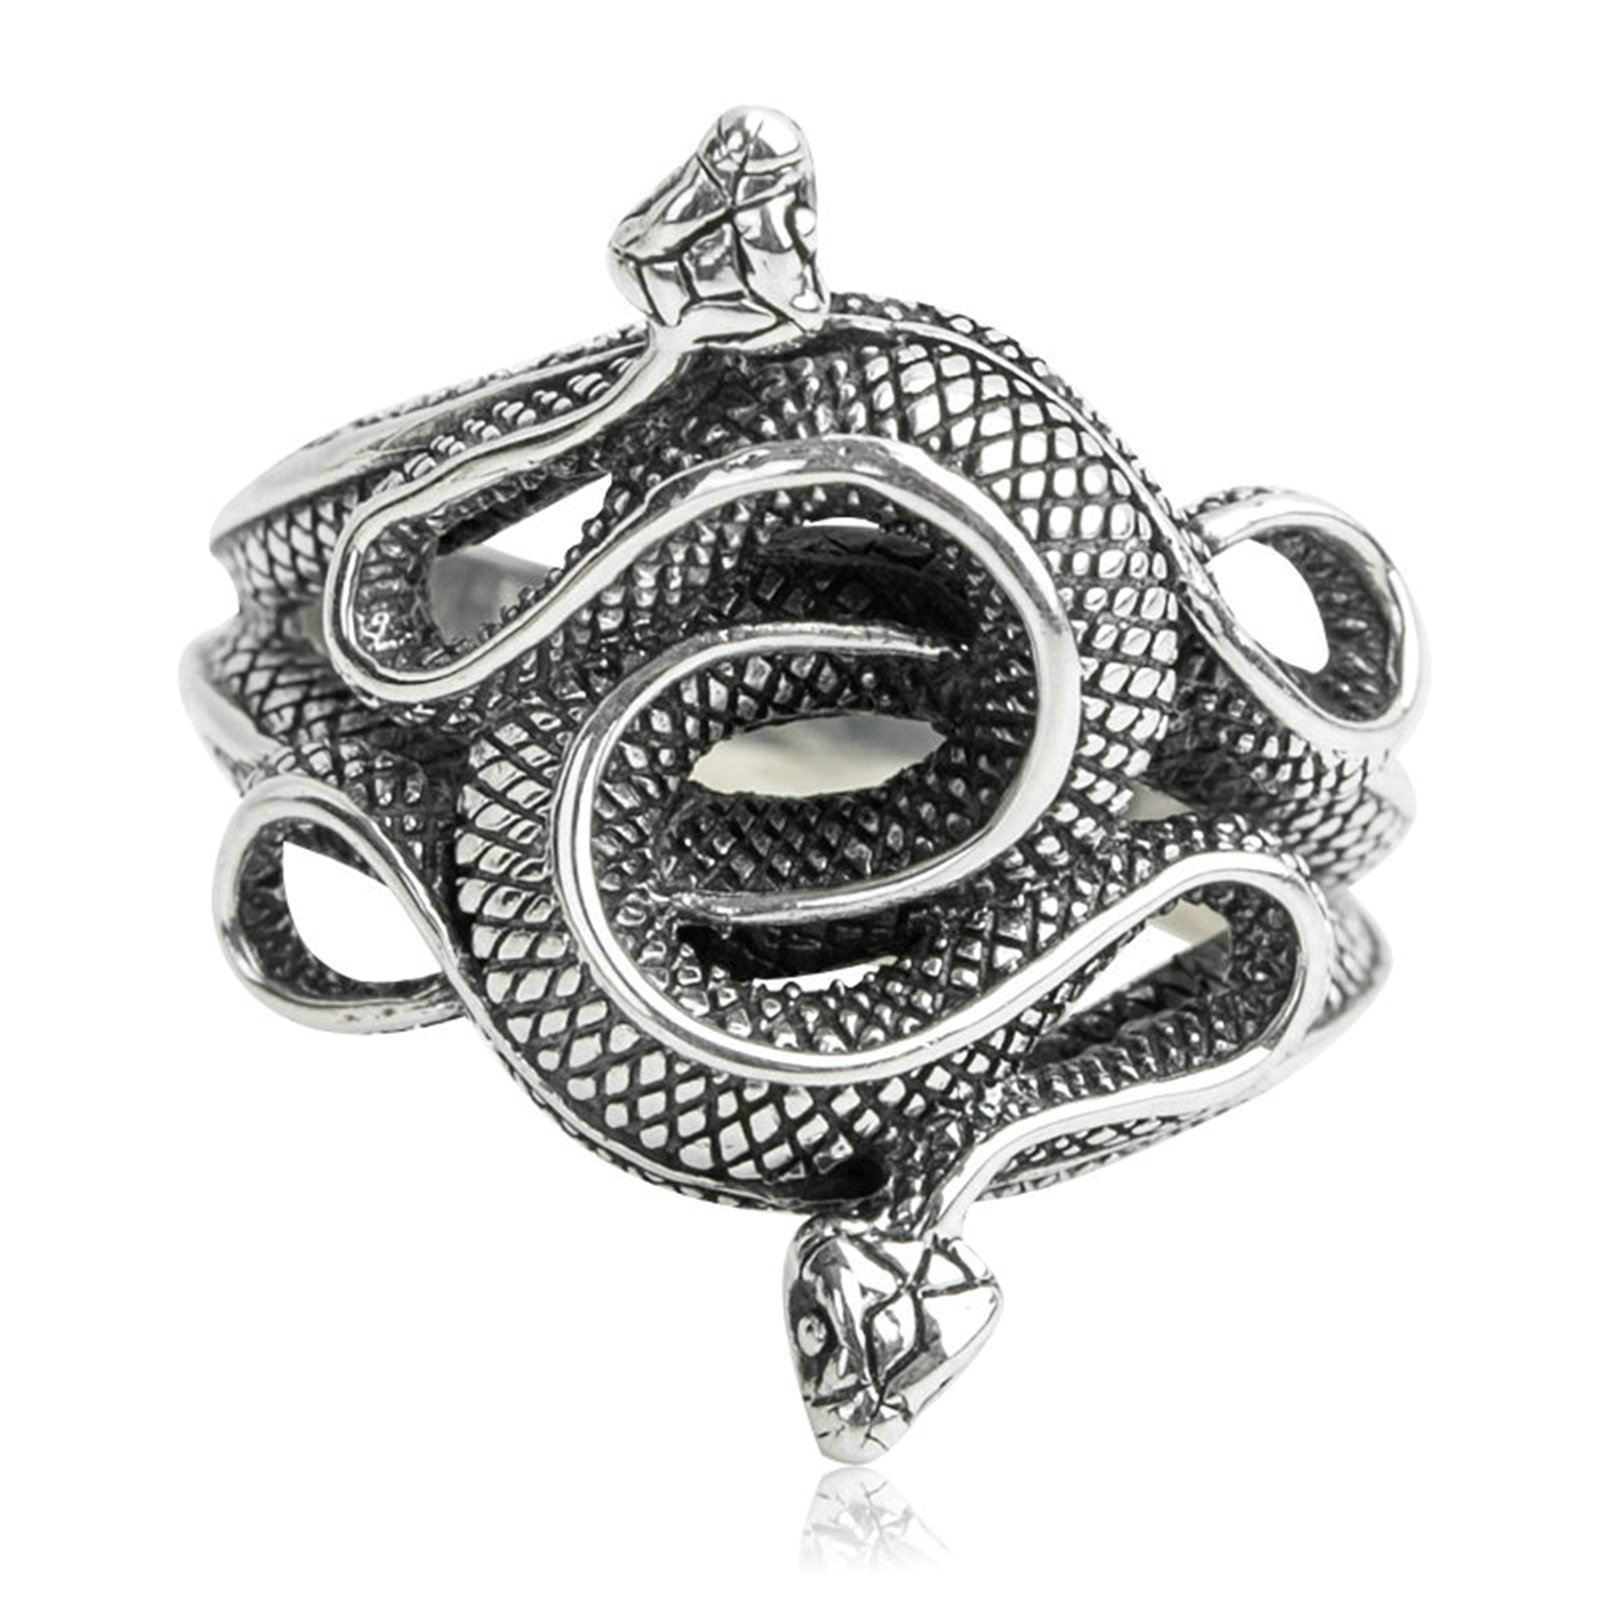 Adisaer Biker Rings Silver Ring for Men Two Snake Ring Size 9.5 Vintage Punk Jewelry